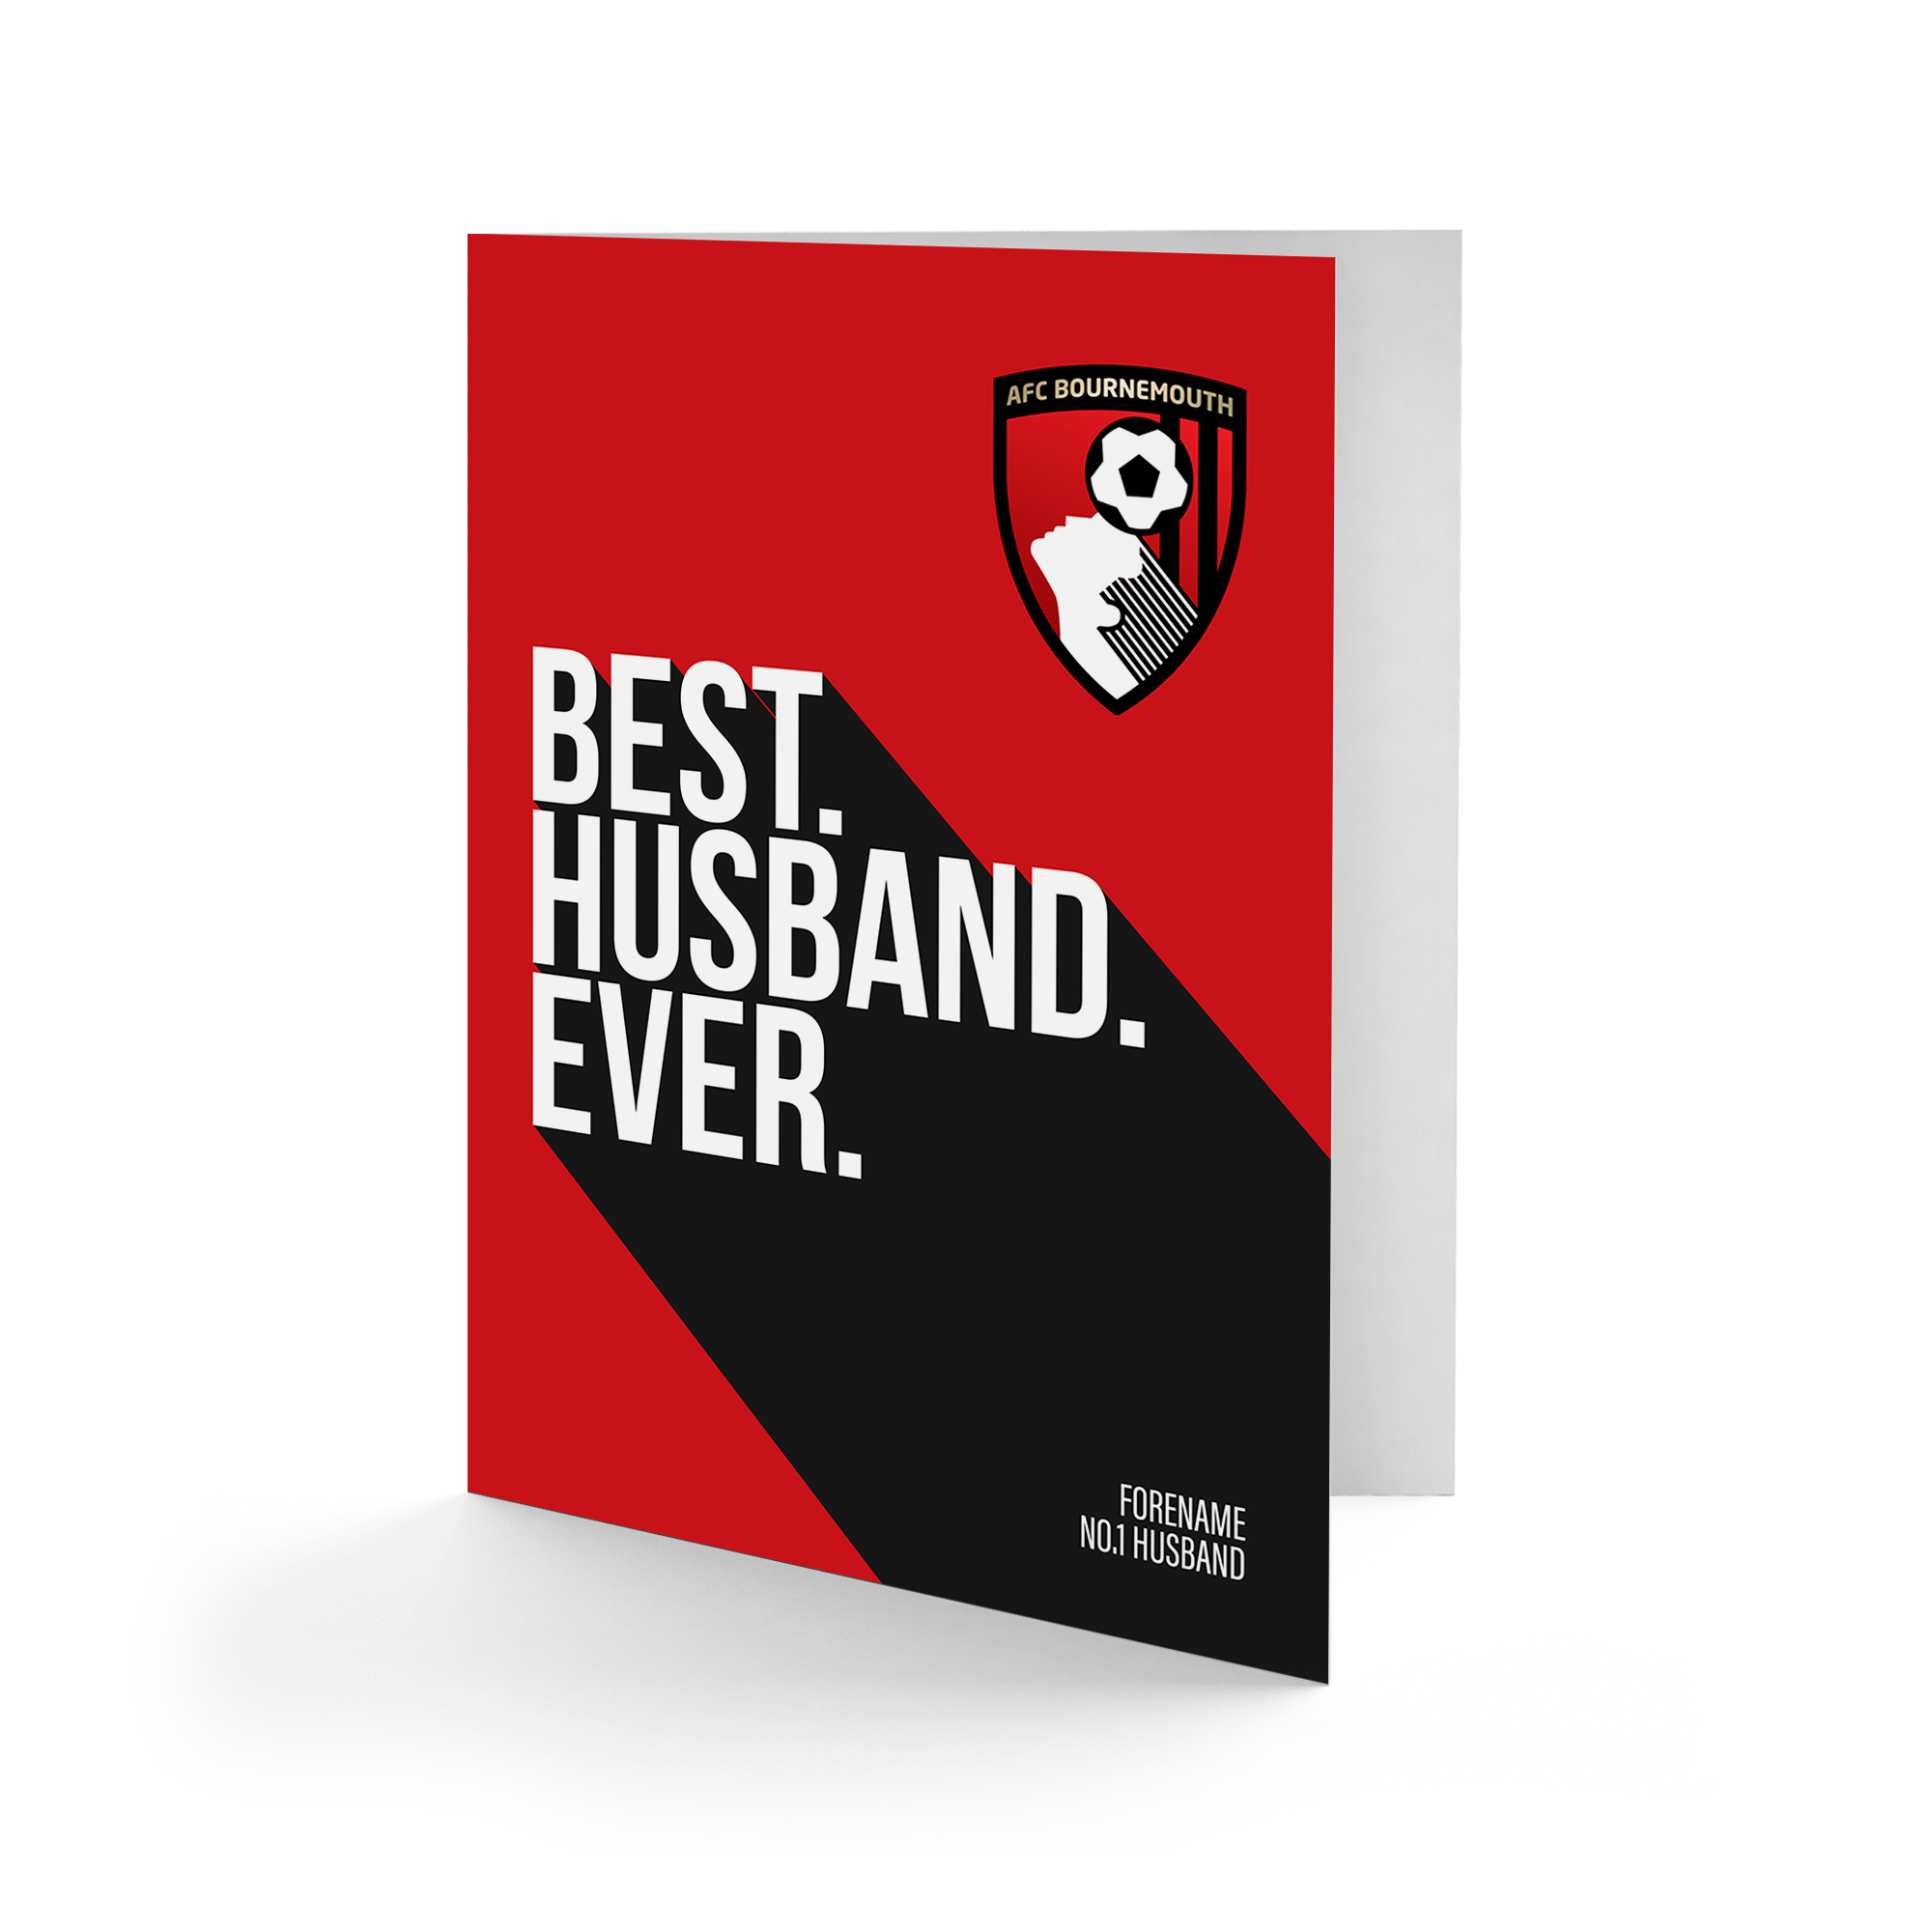 AFC Bournemouth Best Husband Ever Card